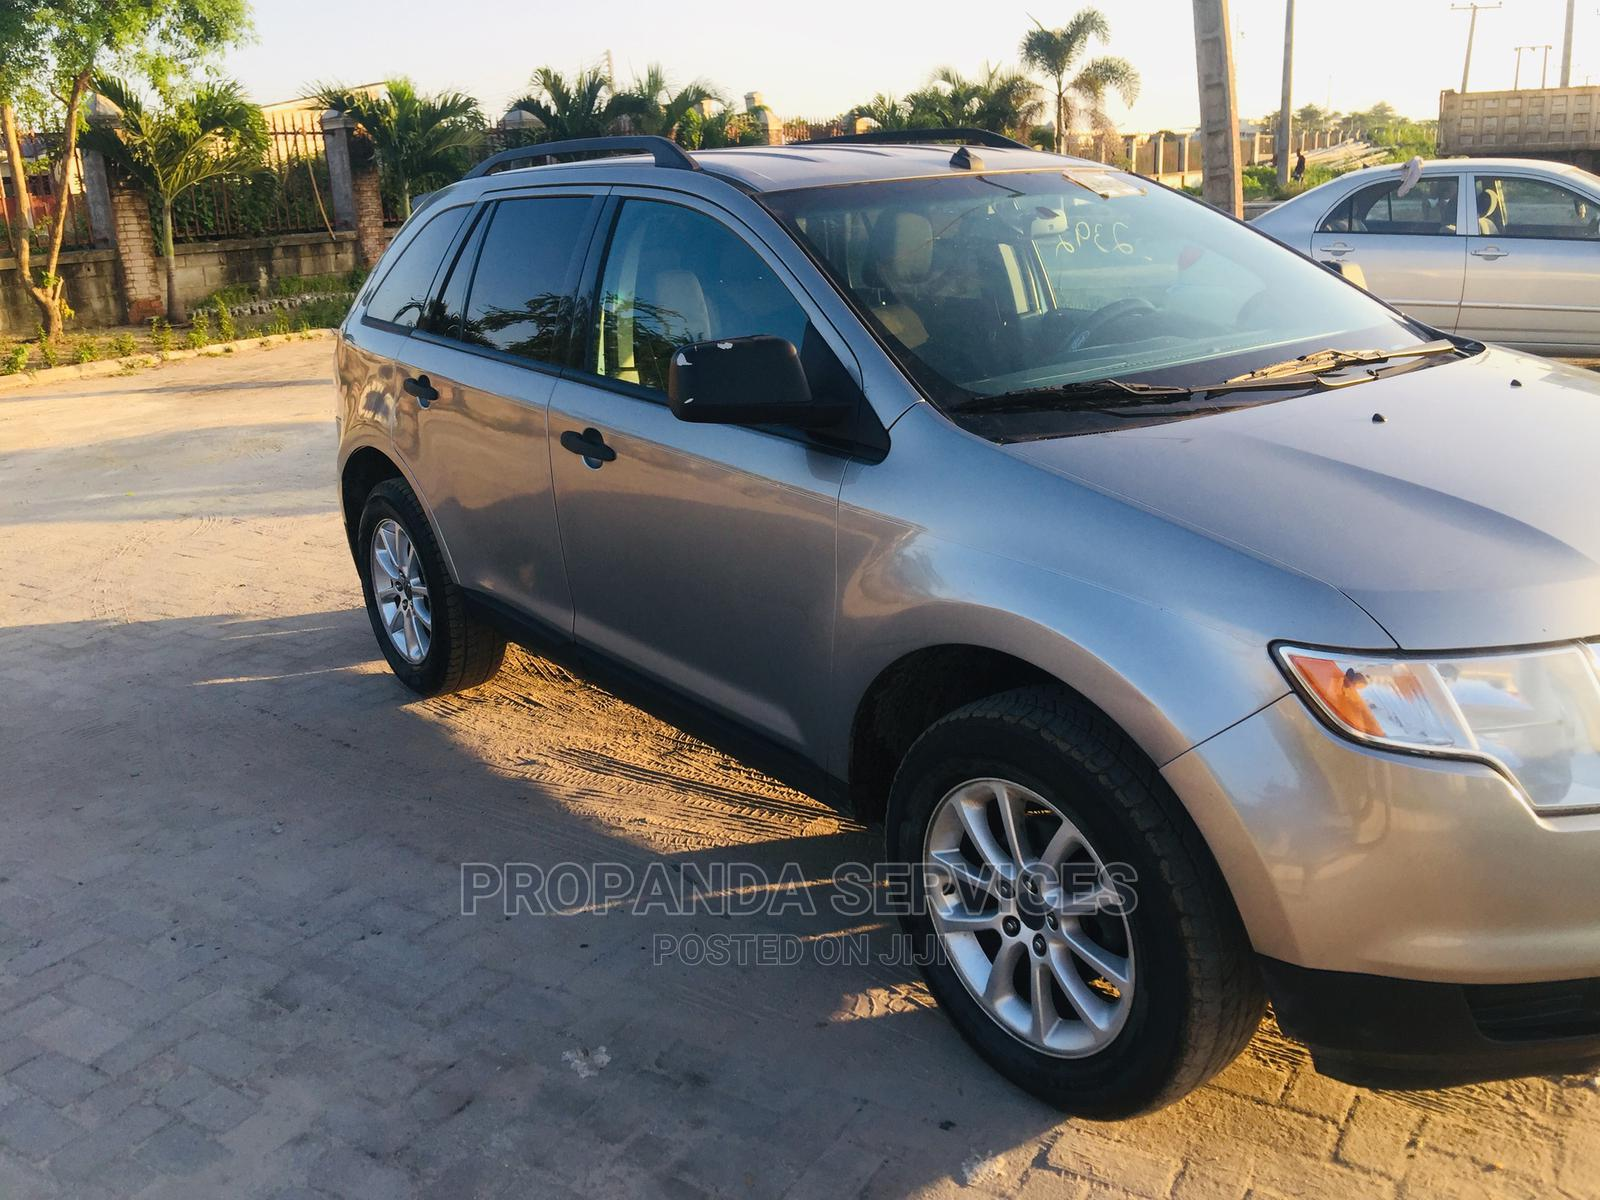 Ford Edge 2008 SE 4dr FWD (3.5L 6cyl 6A) Gray   Cars for sale in Ajah, Lagos State, Nigeria